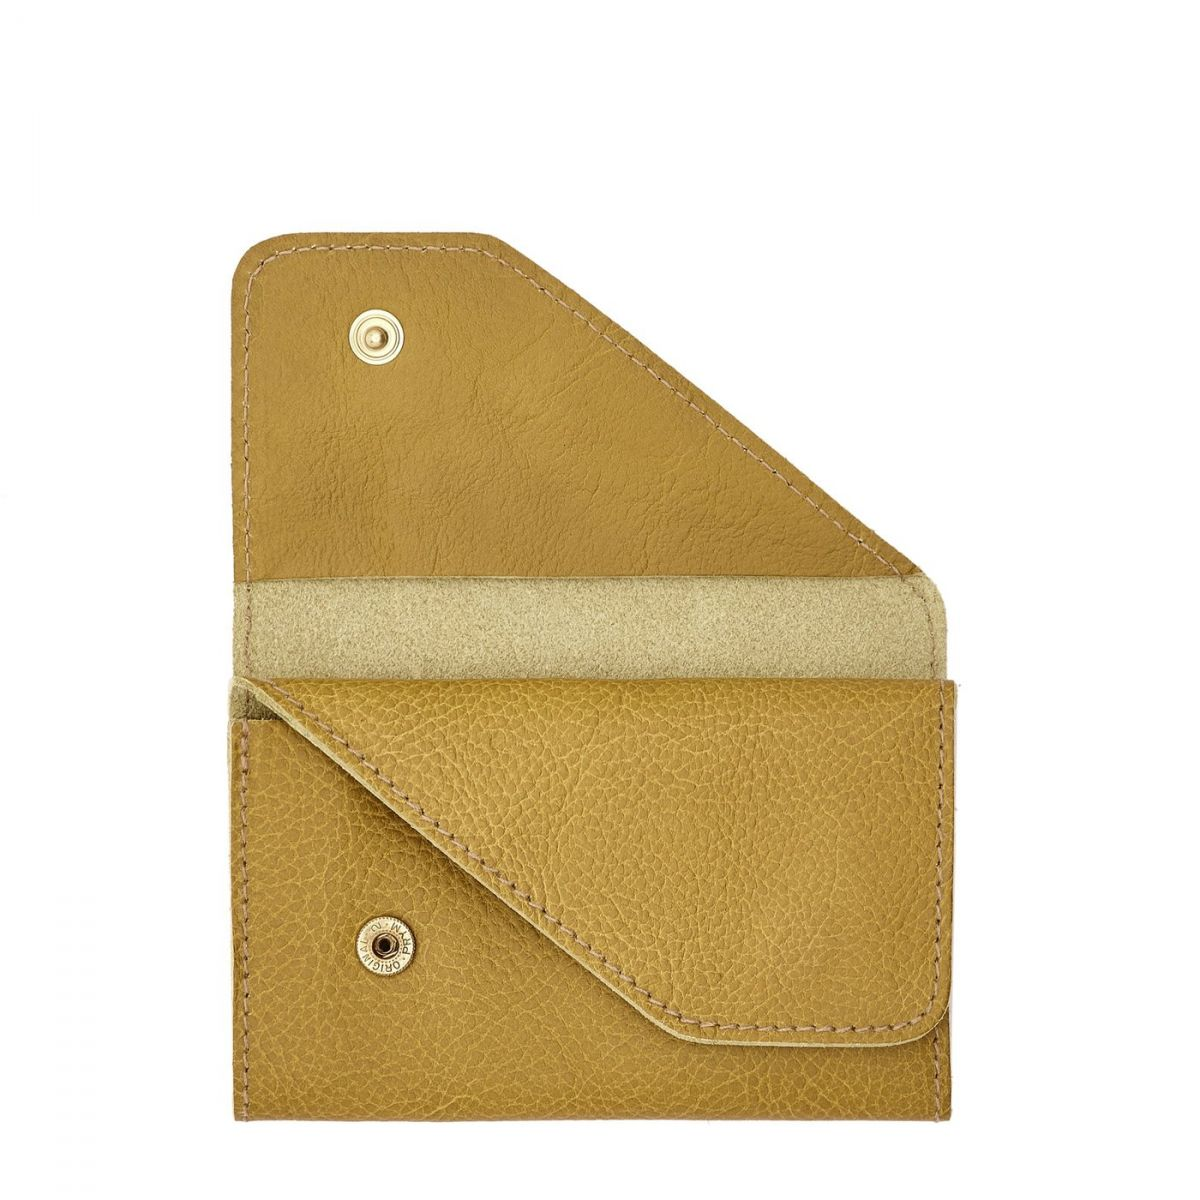 Card Case in Cowhide Leather SCC015 color Curry | Details